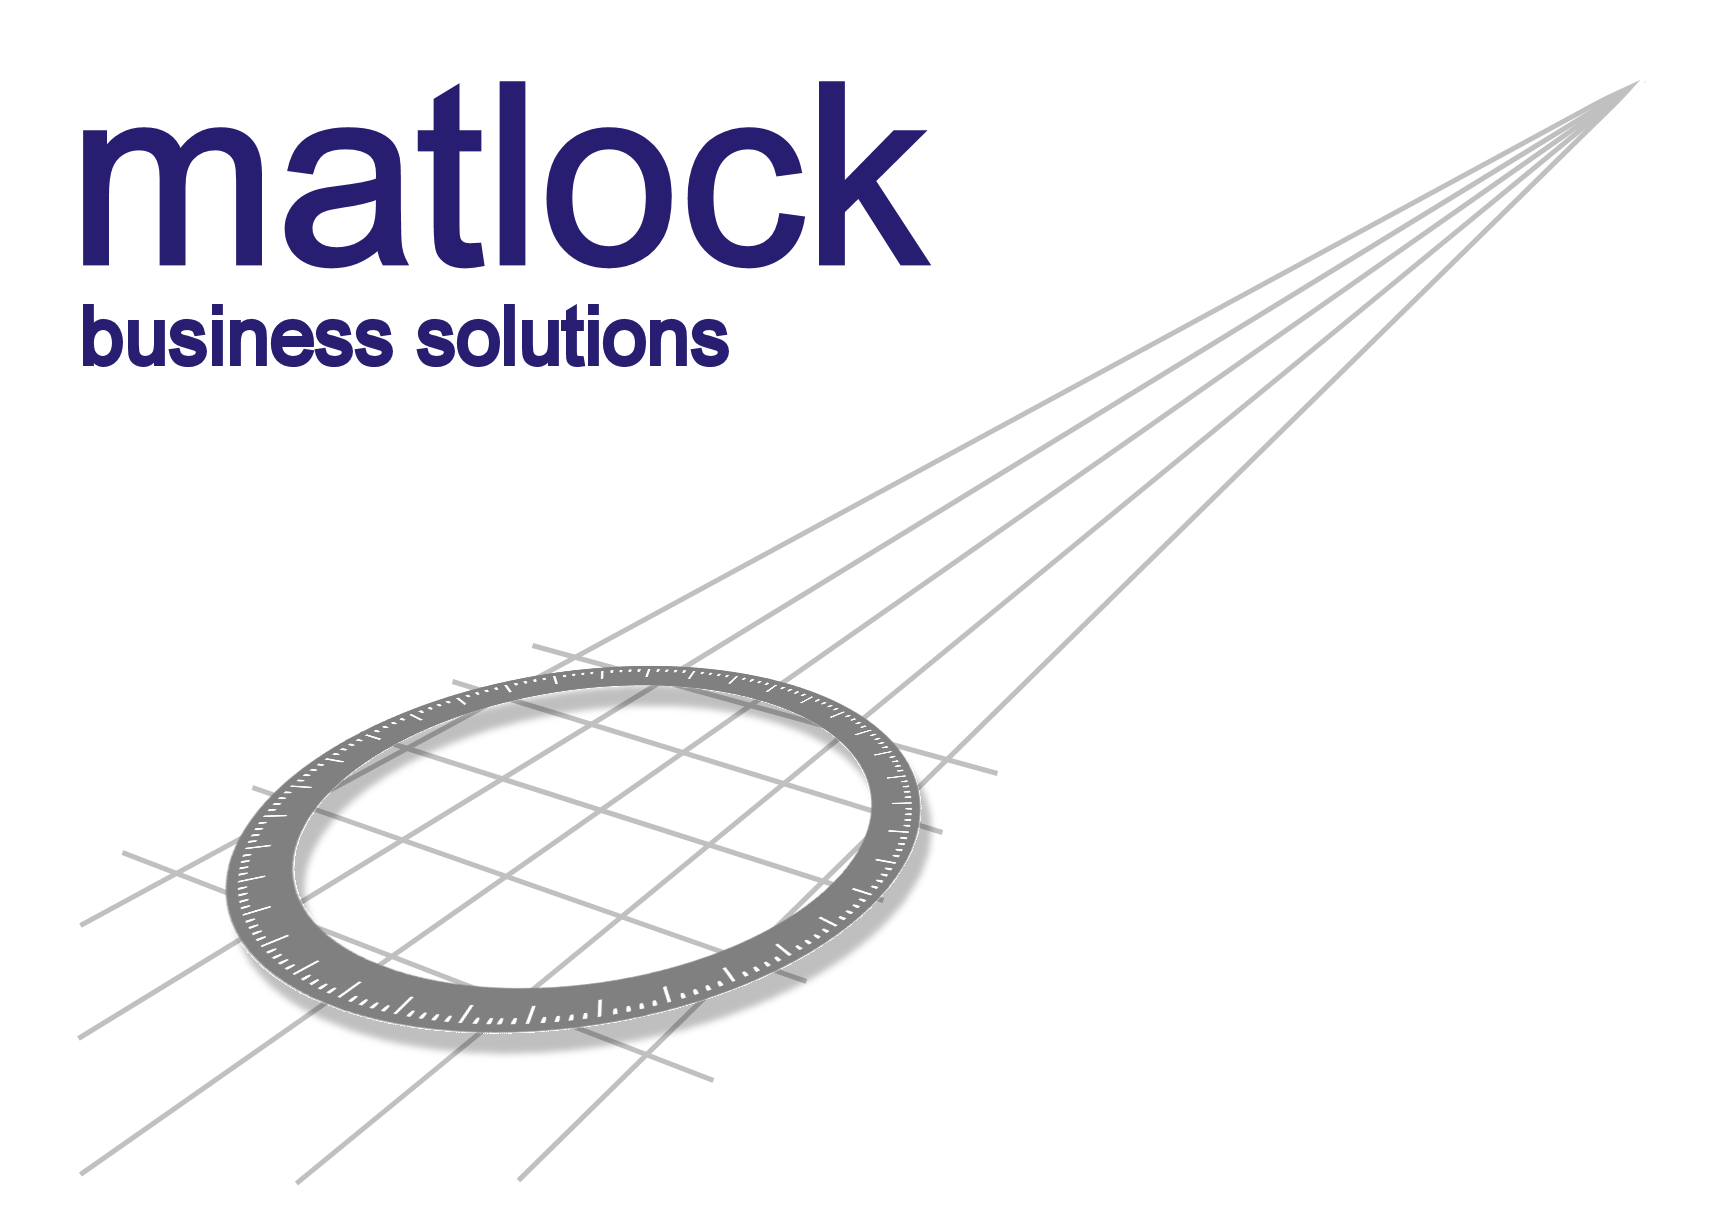 Matlock Business Solutions Ltd logo